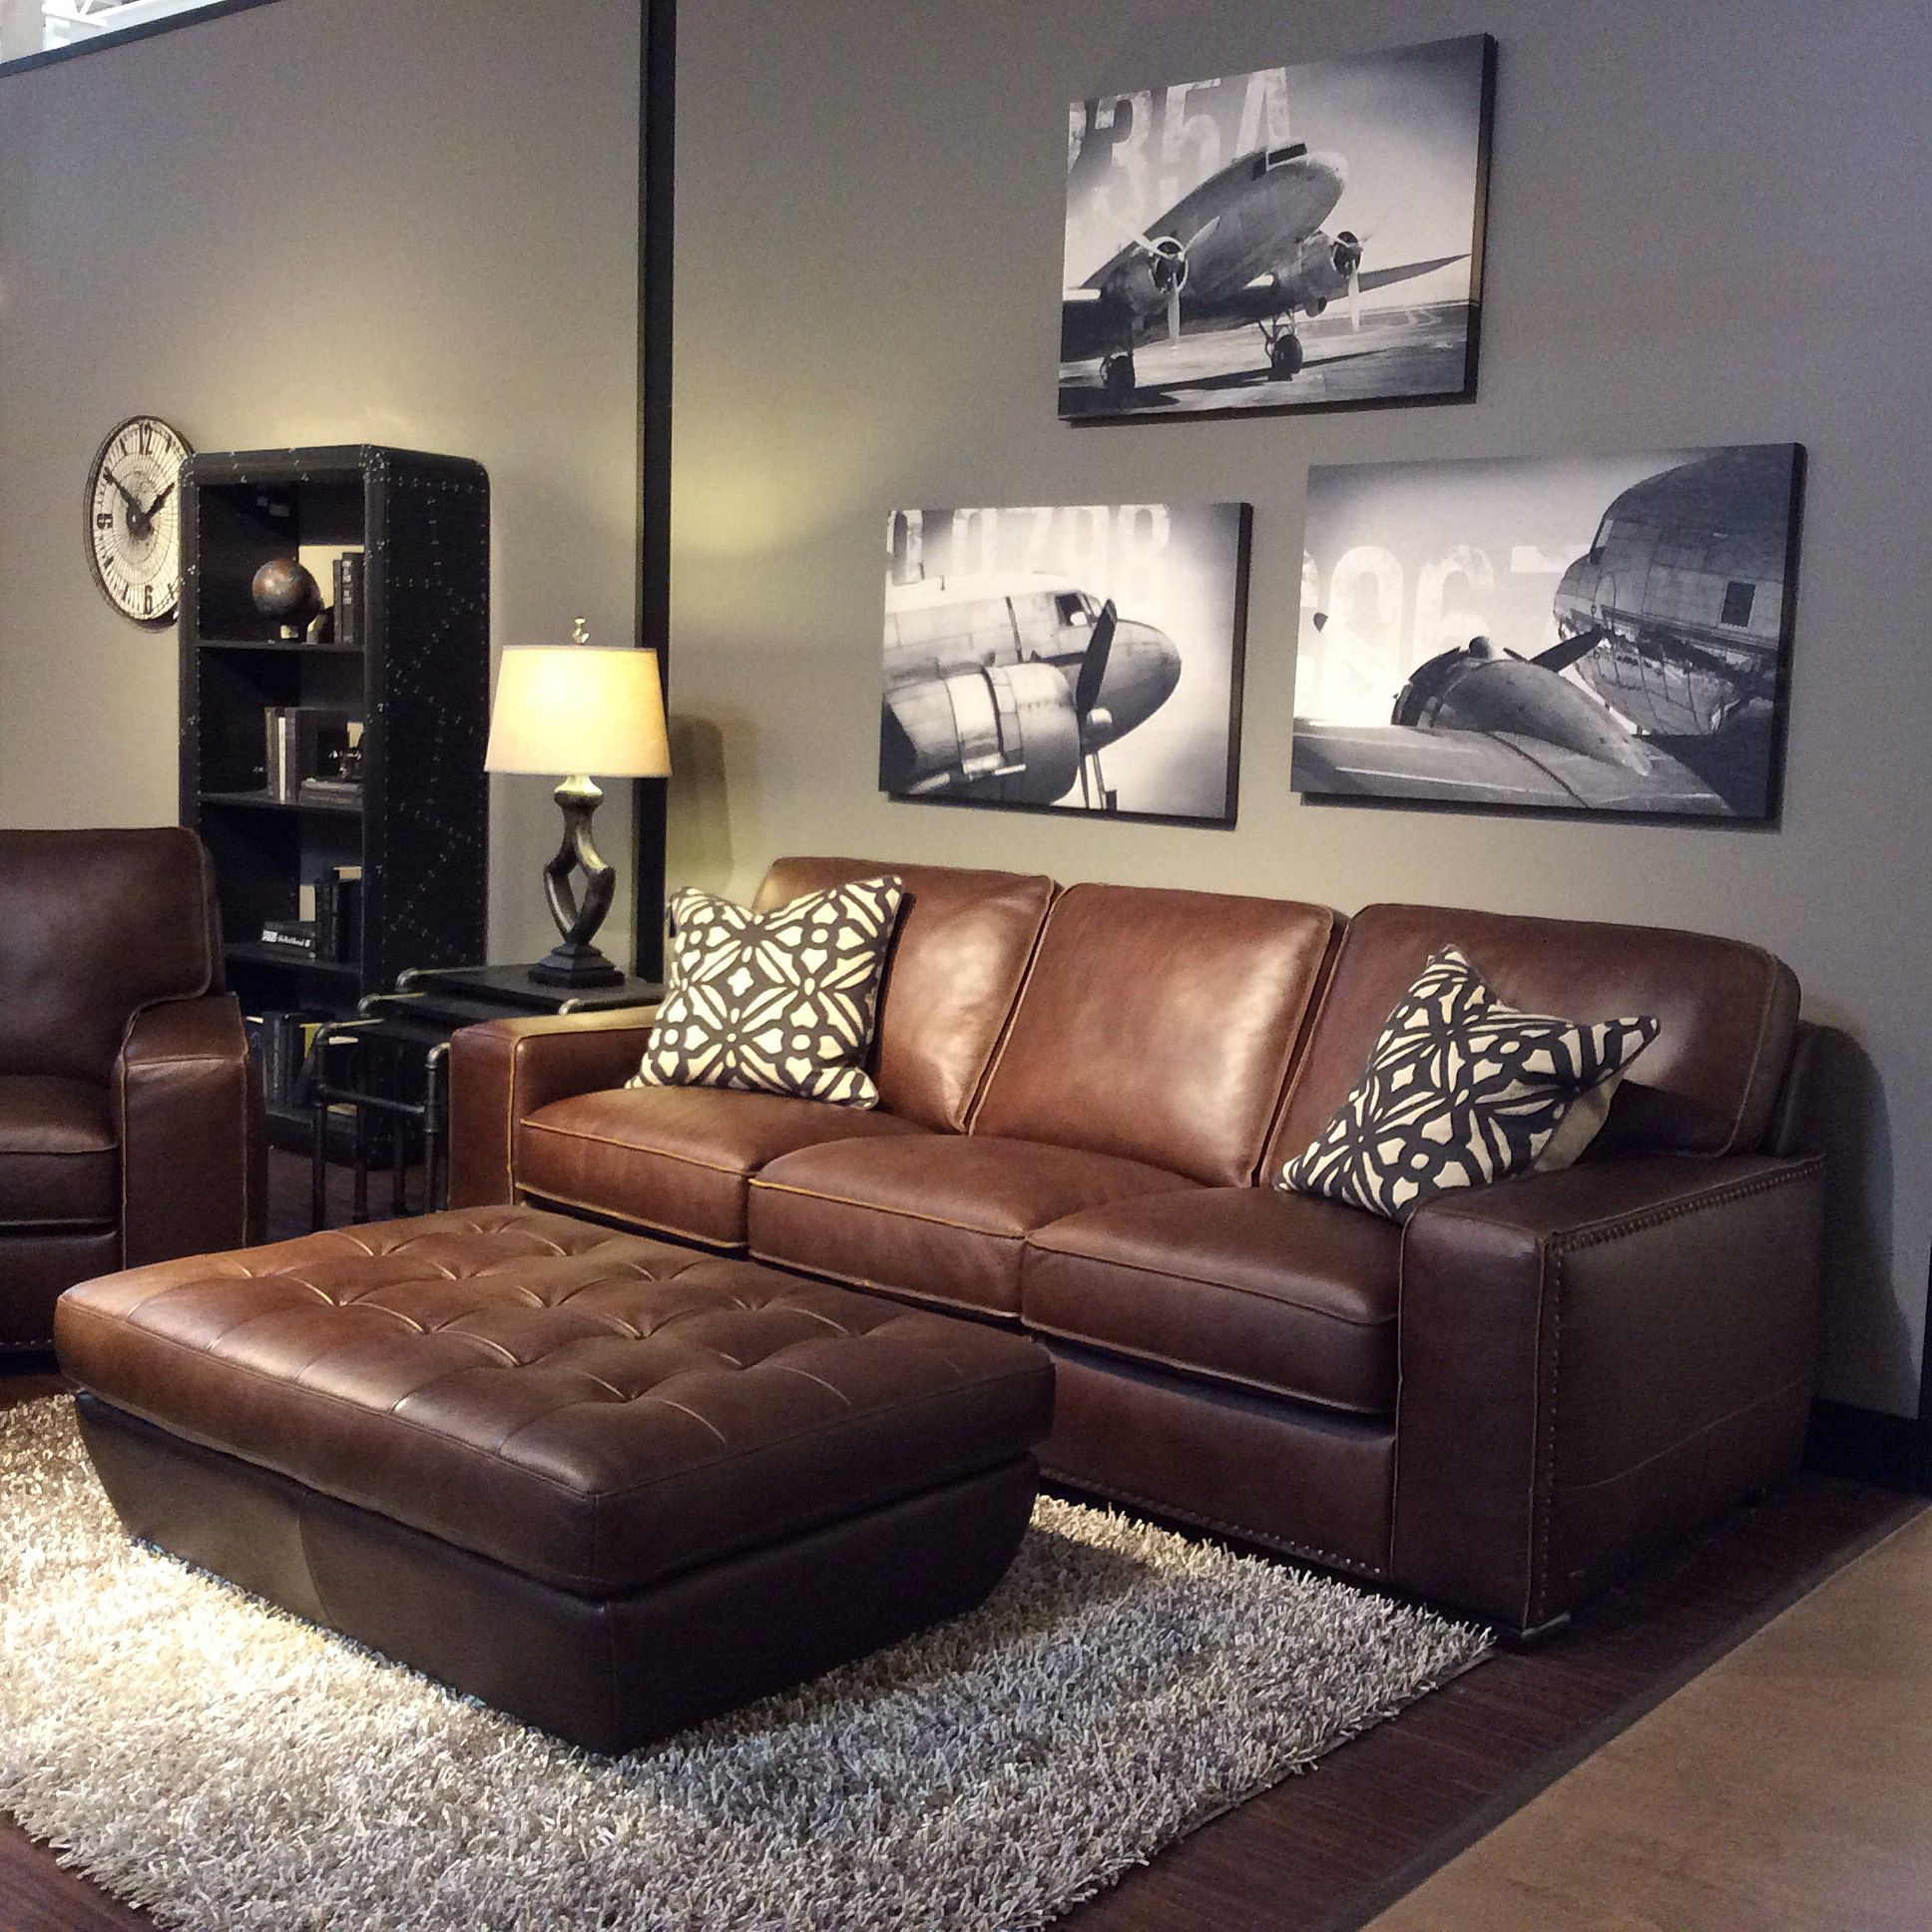 family room with warm gray walls, black and white art, brown